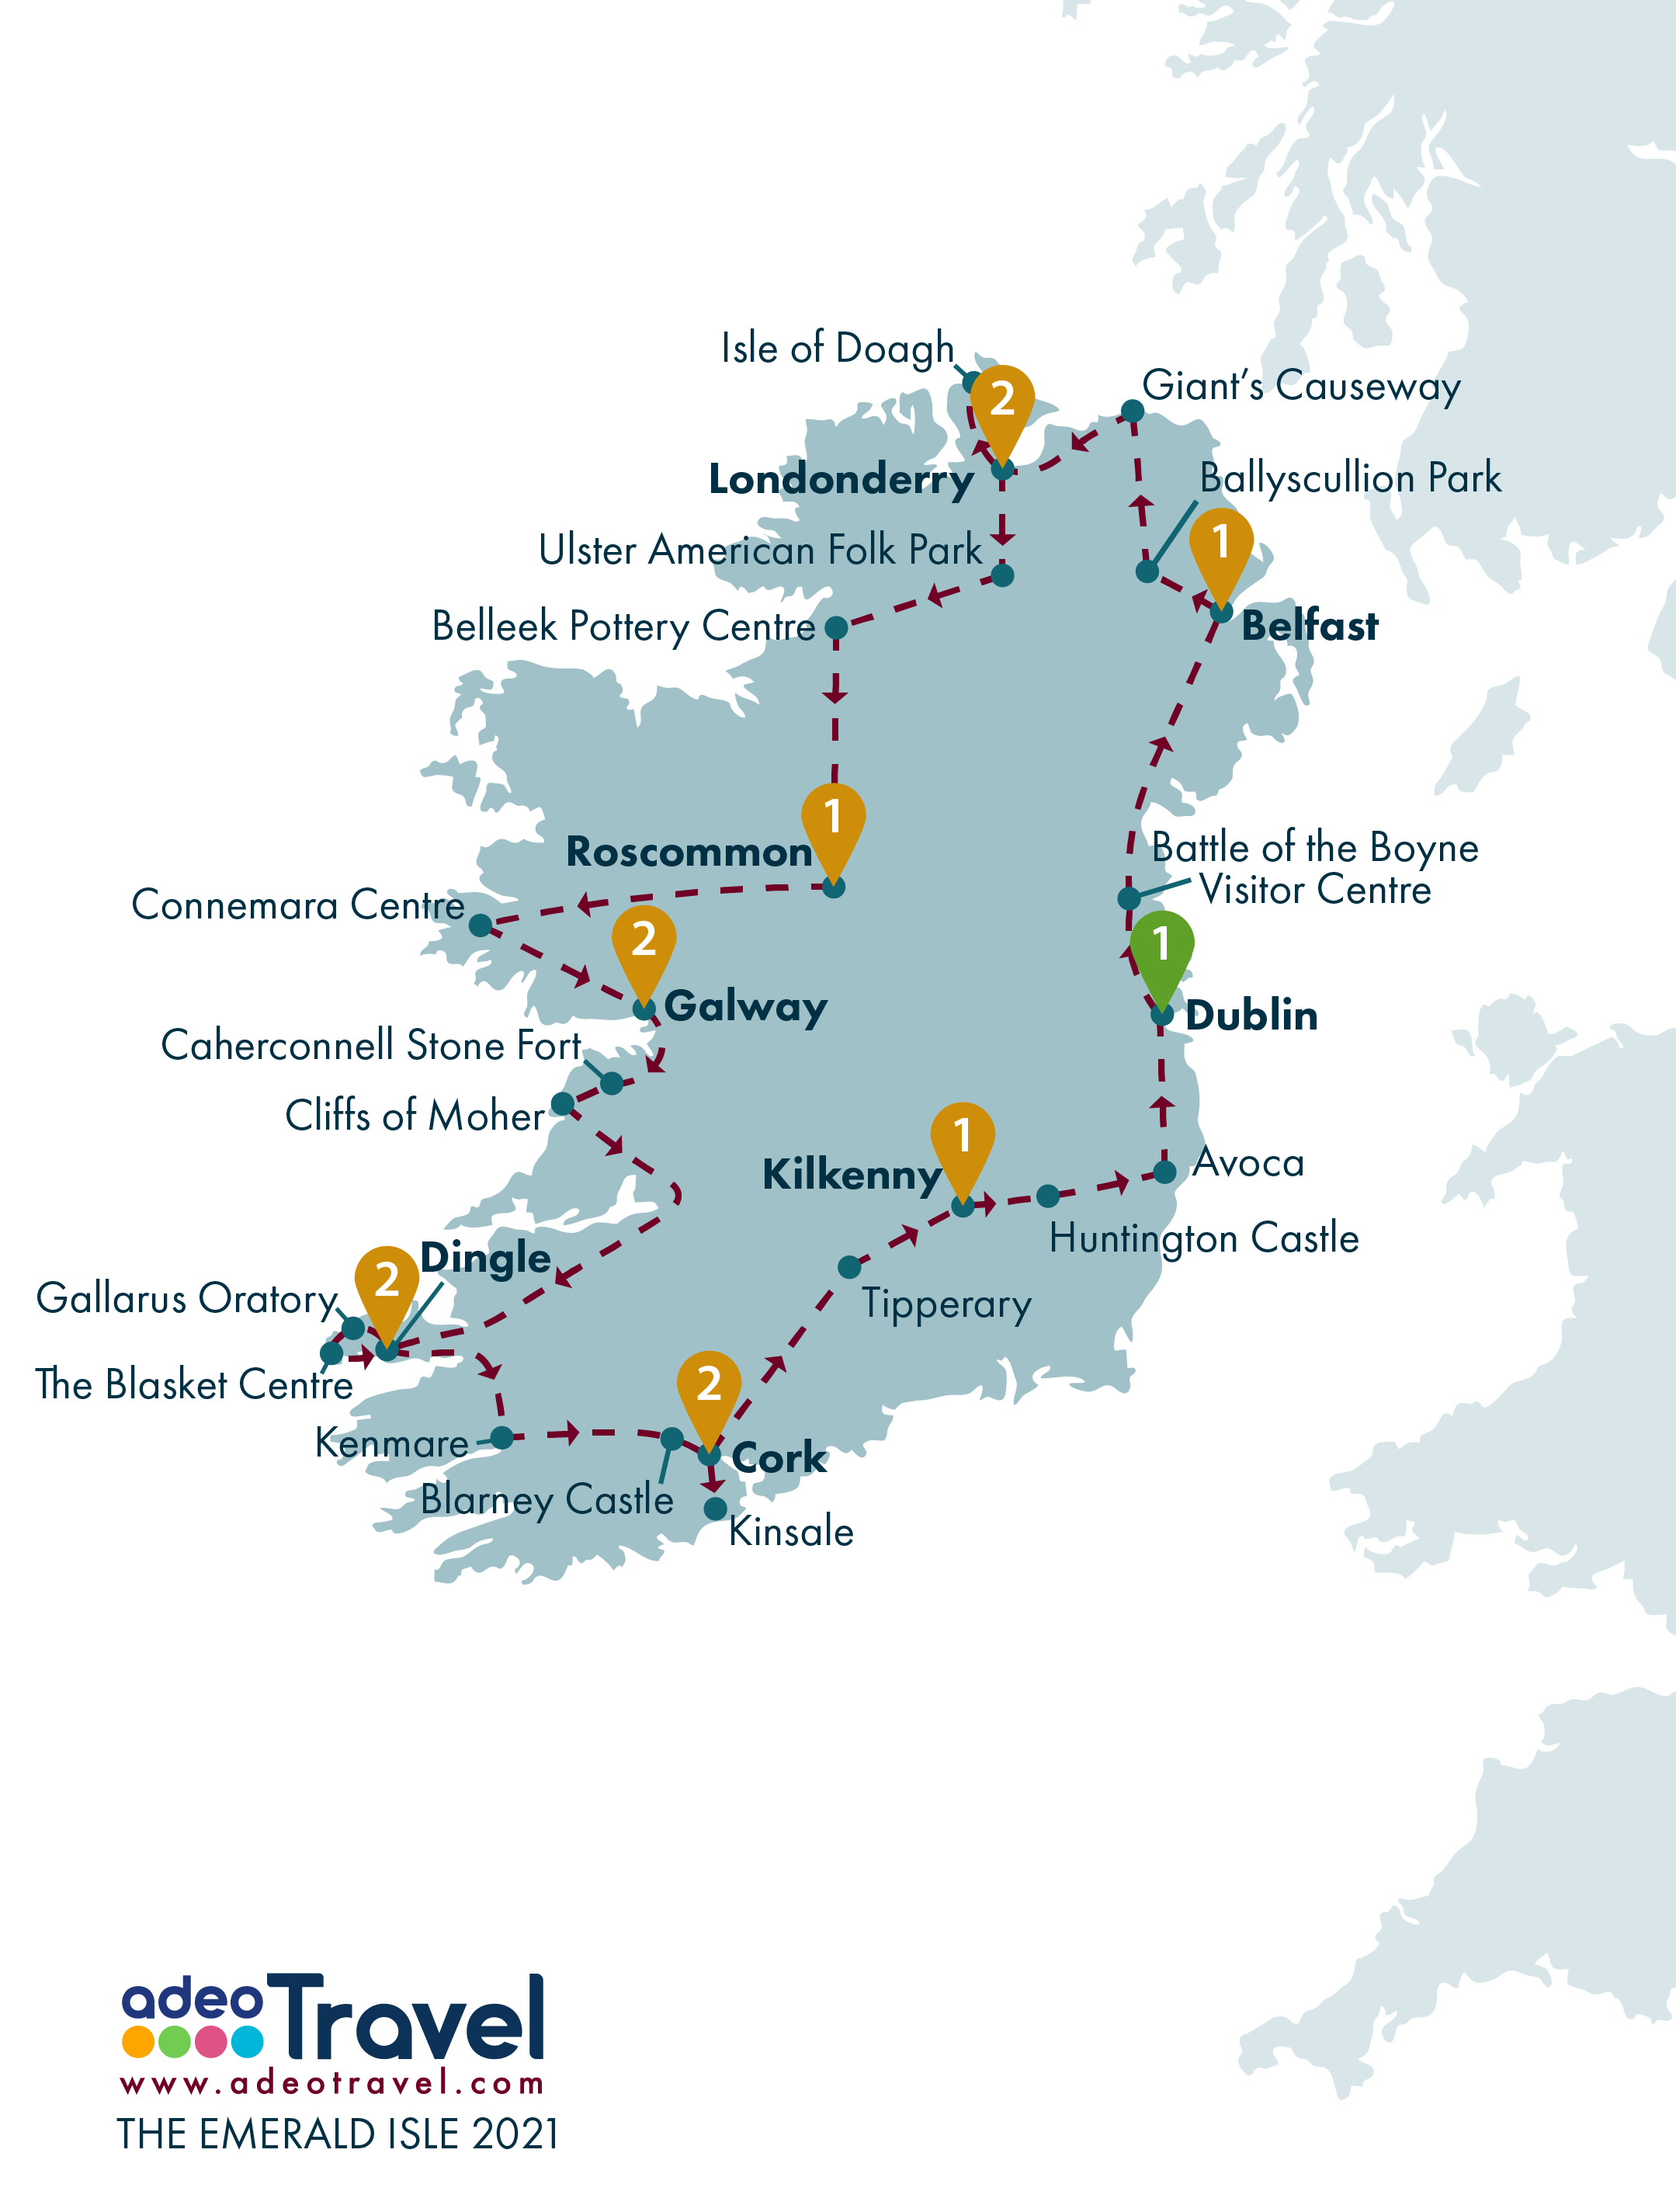 Map - The Emerald Isle 2021